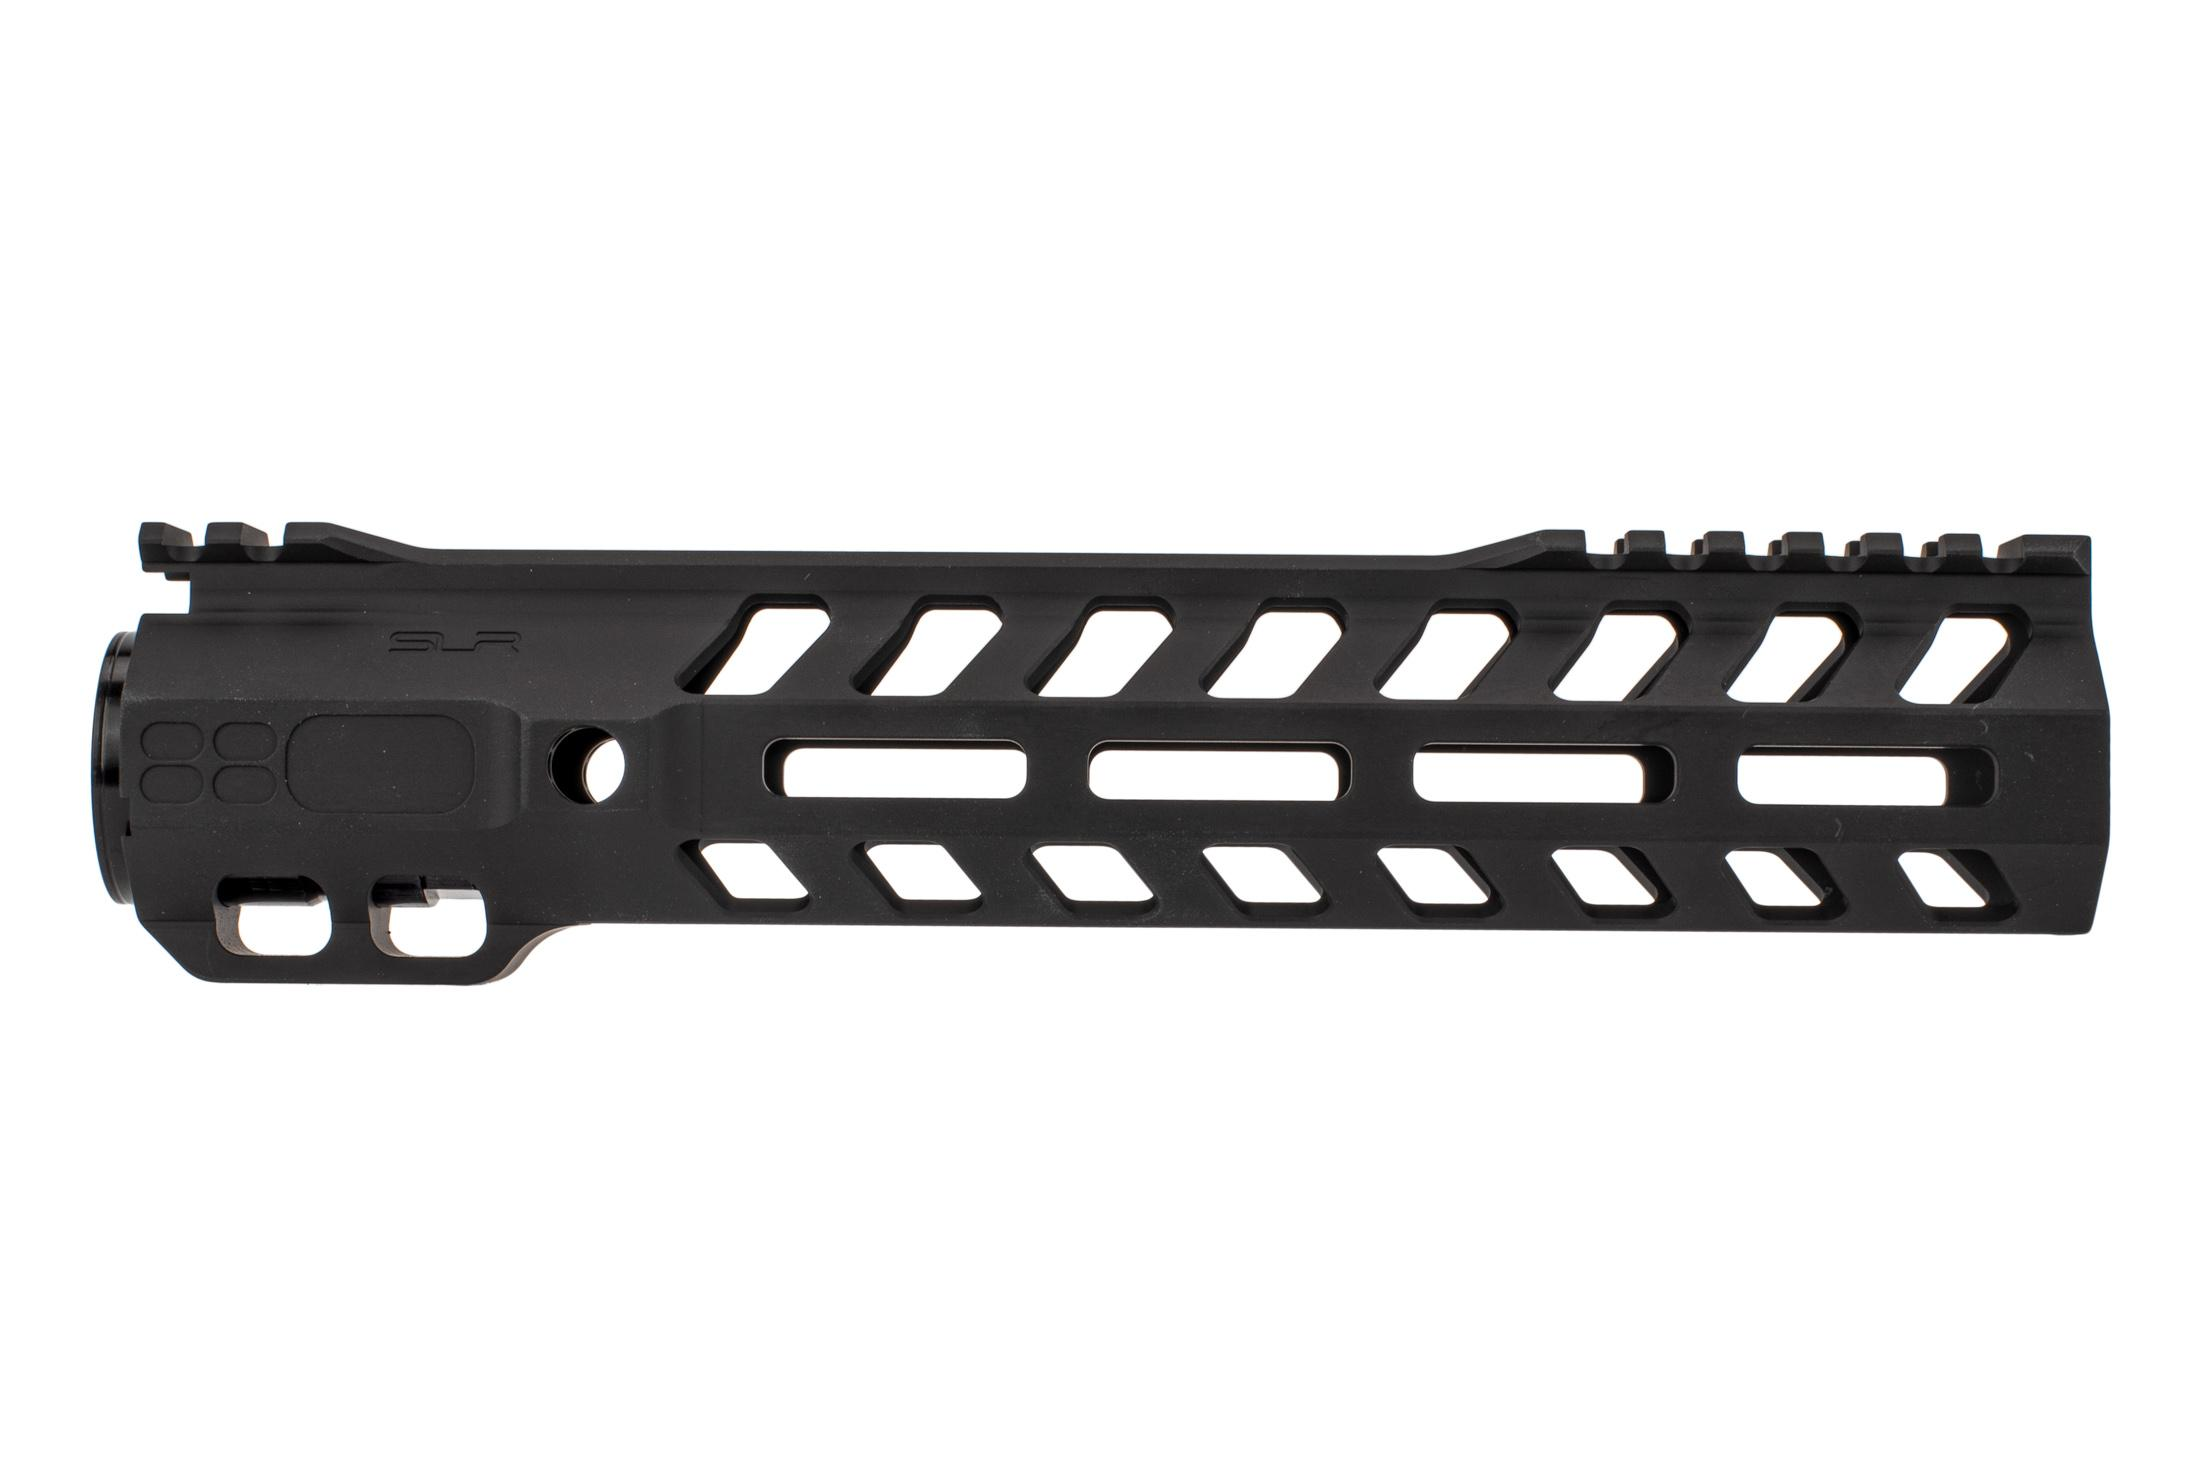 SLR Rifleworks 9.7 Ion HDX AR-15 handguard with interrupted top rail features M-LOK on four sides and a black finish